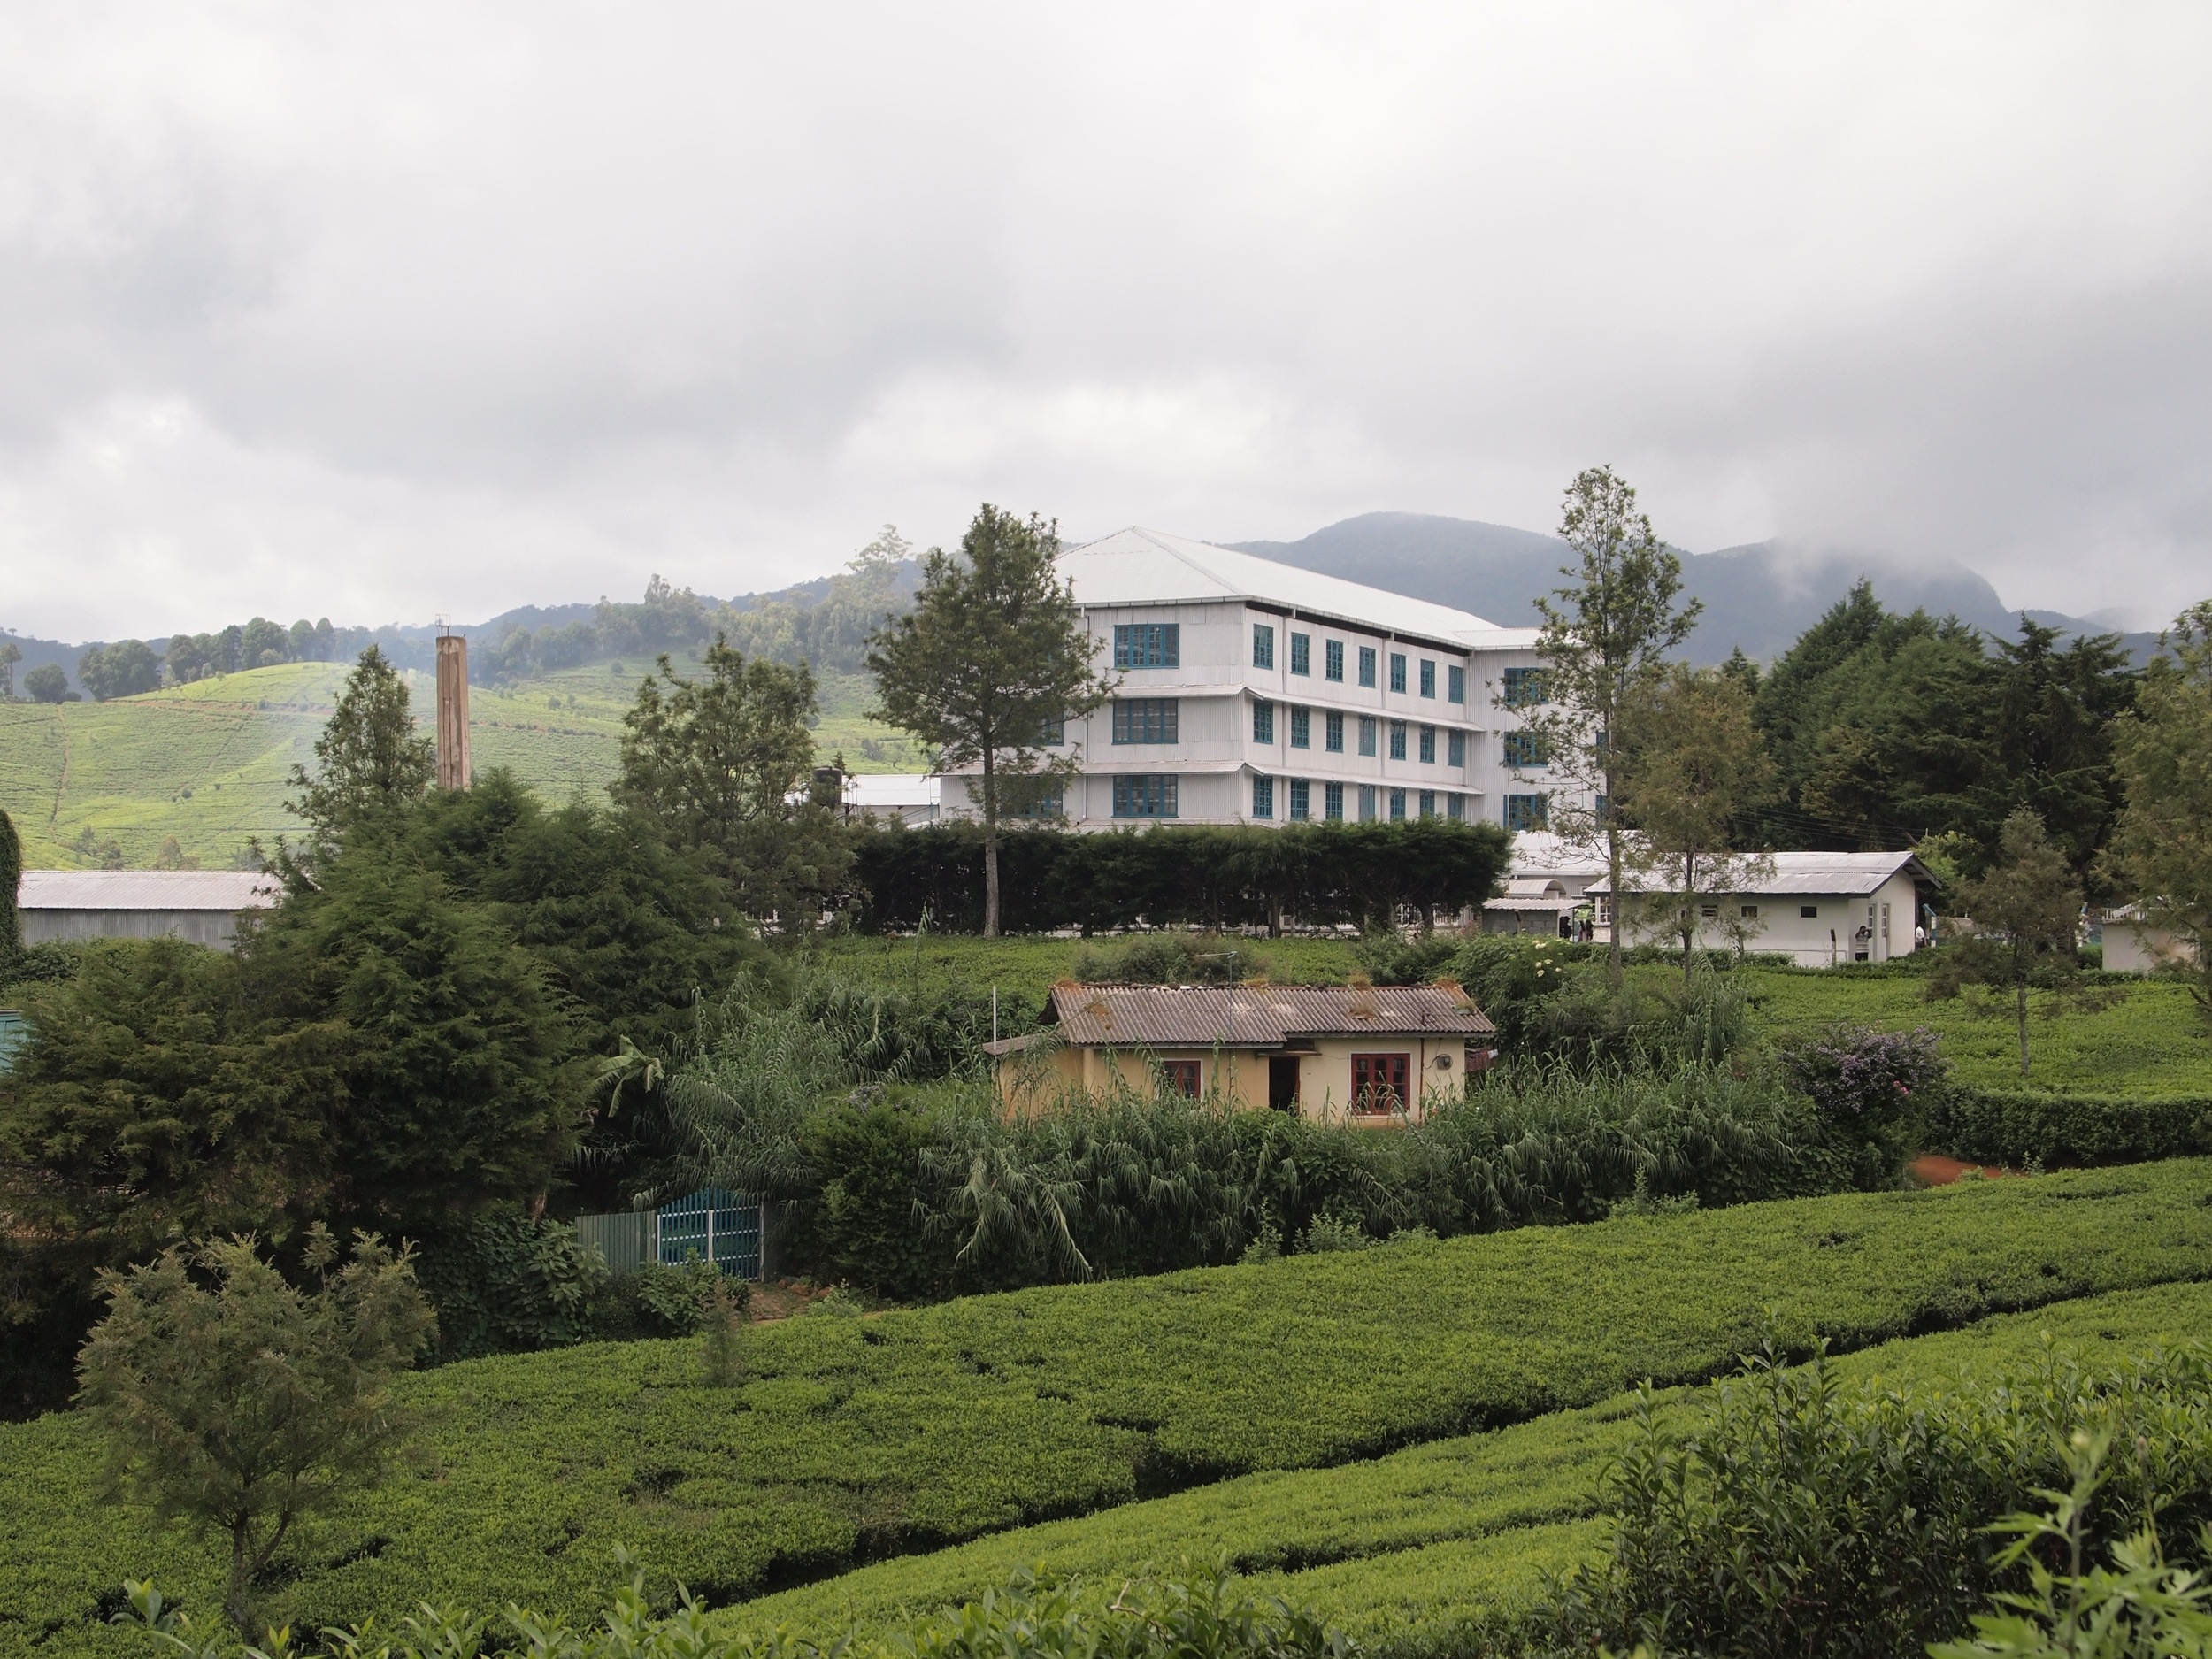 Surrounded by tea bushes